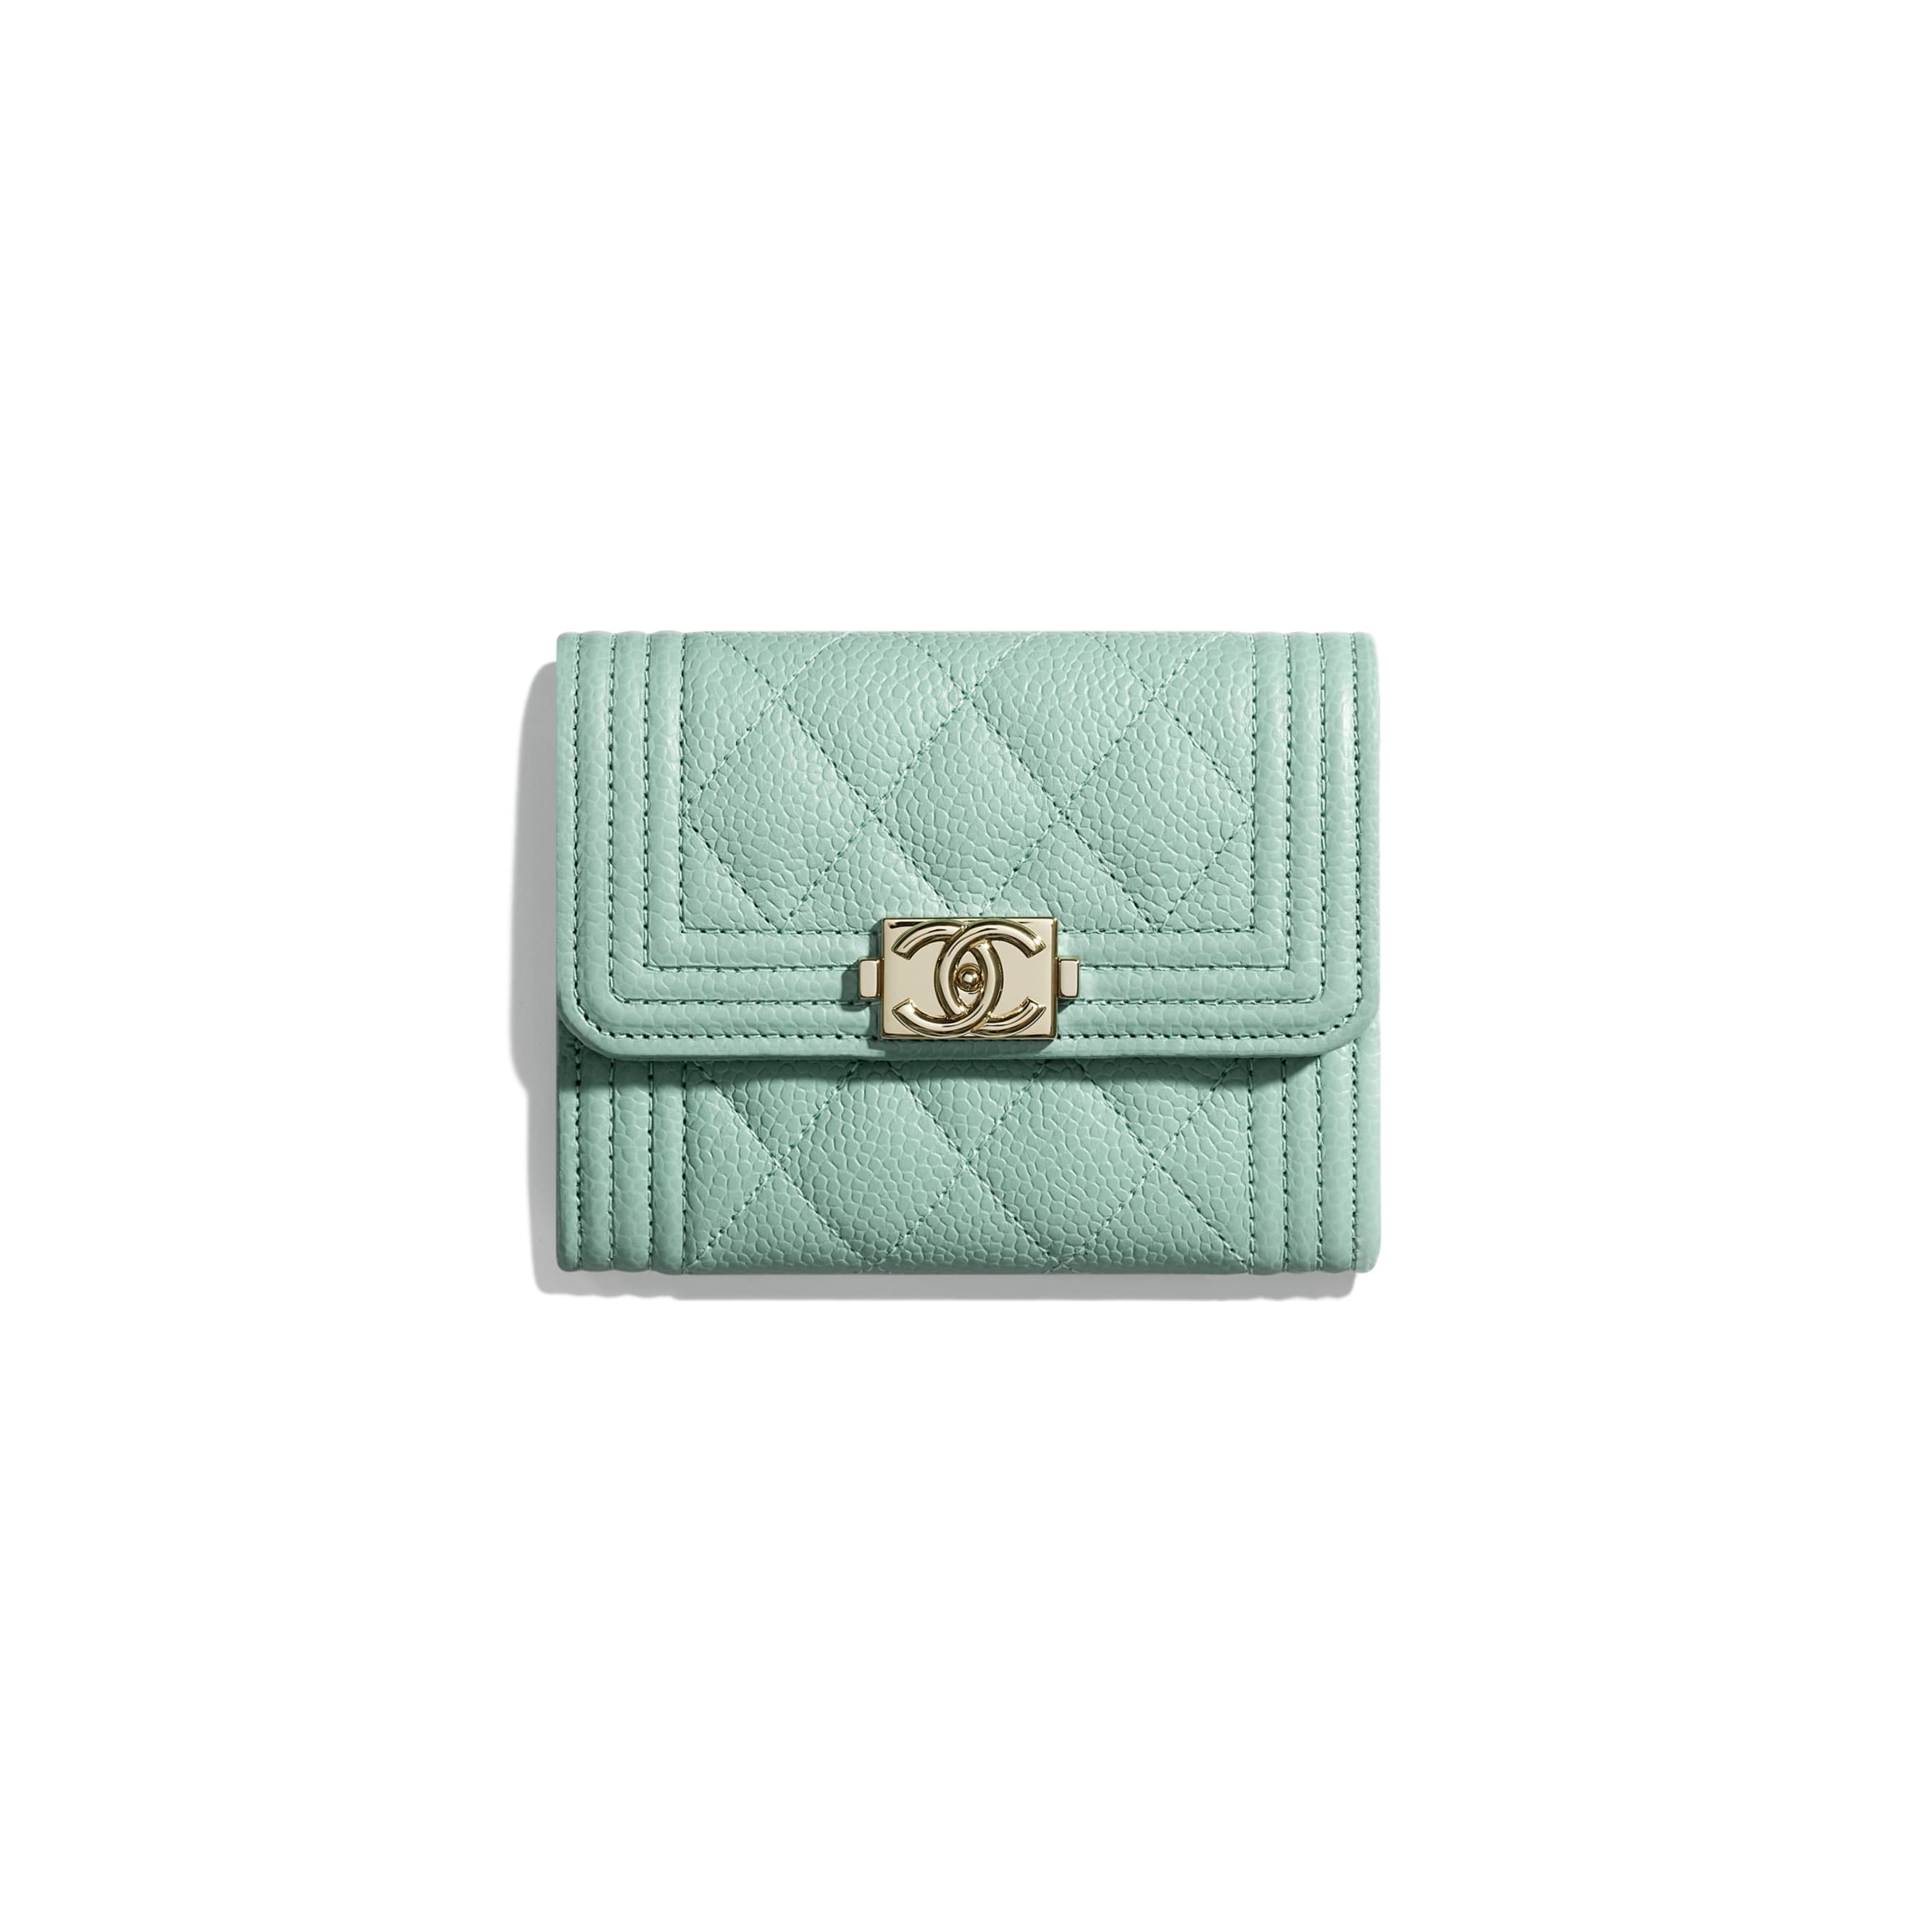 BOY CHANEL Flap Coin Purse - Blue - Grained Calfskin & Gold-Tone Metal - Default view - see standard sized version